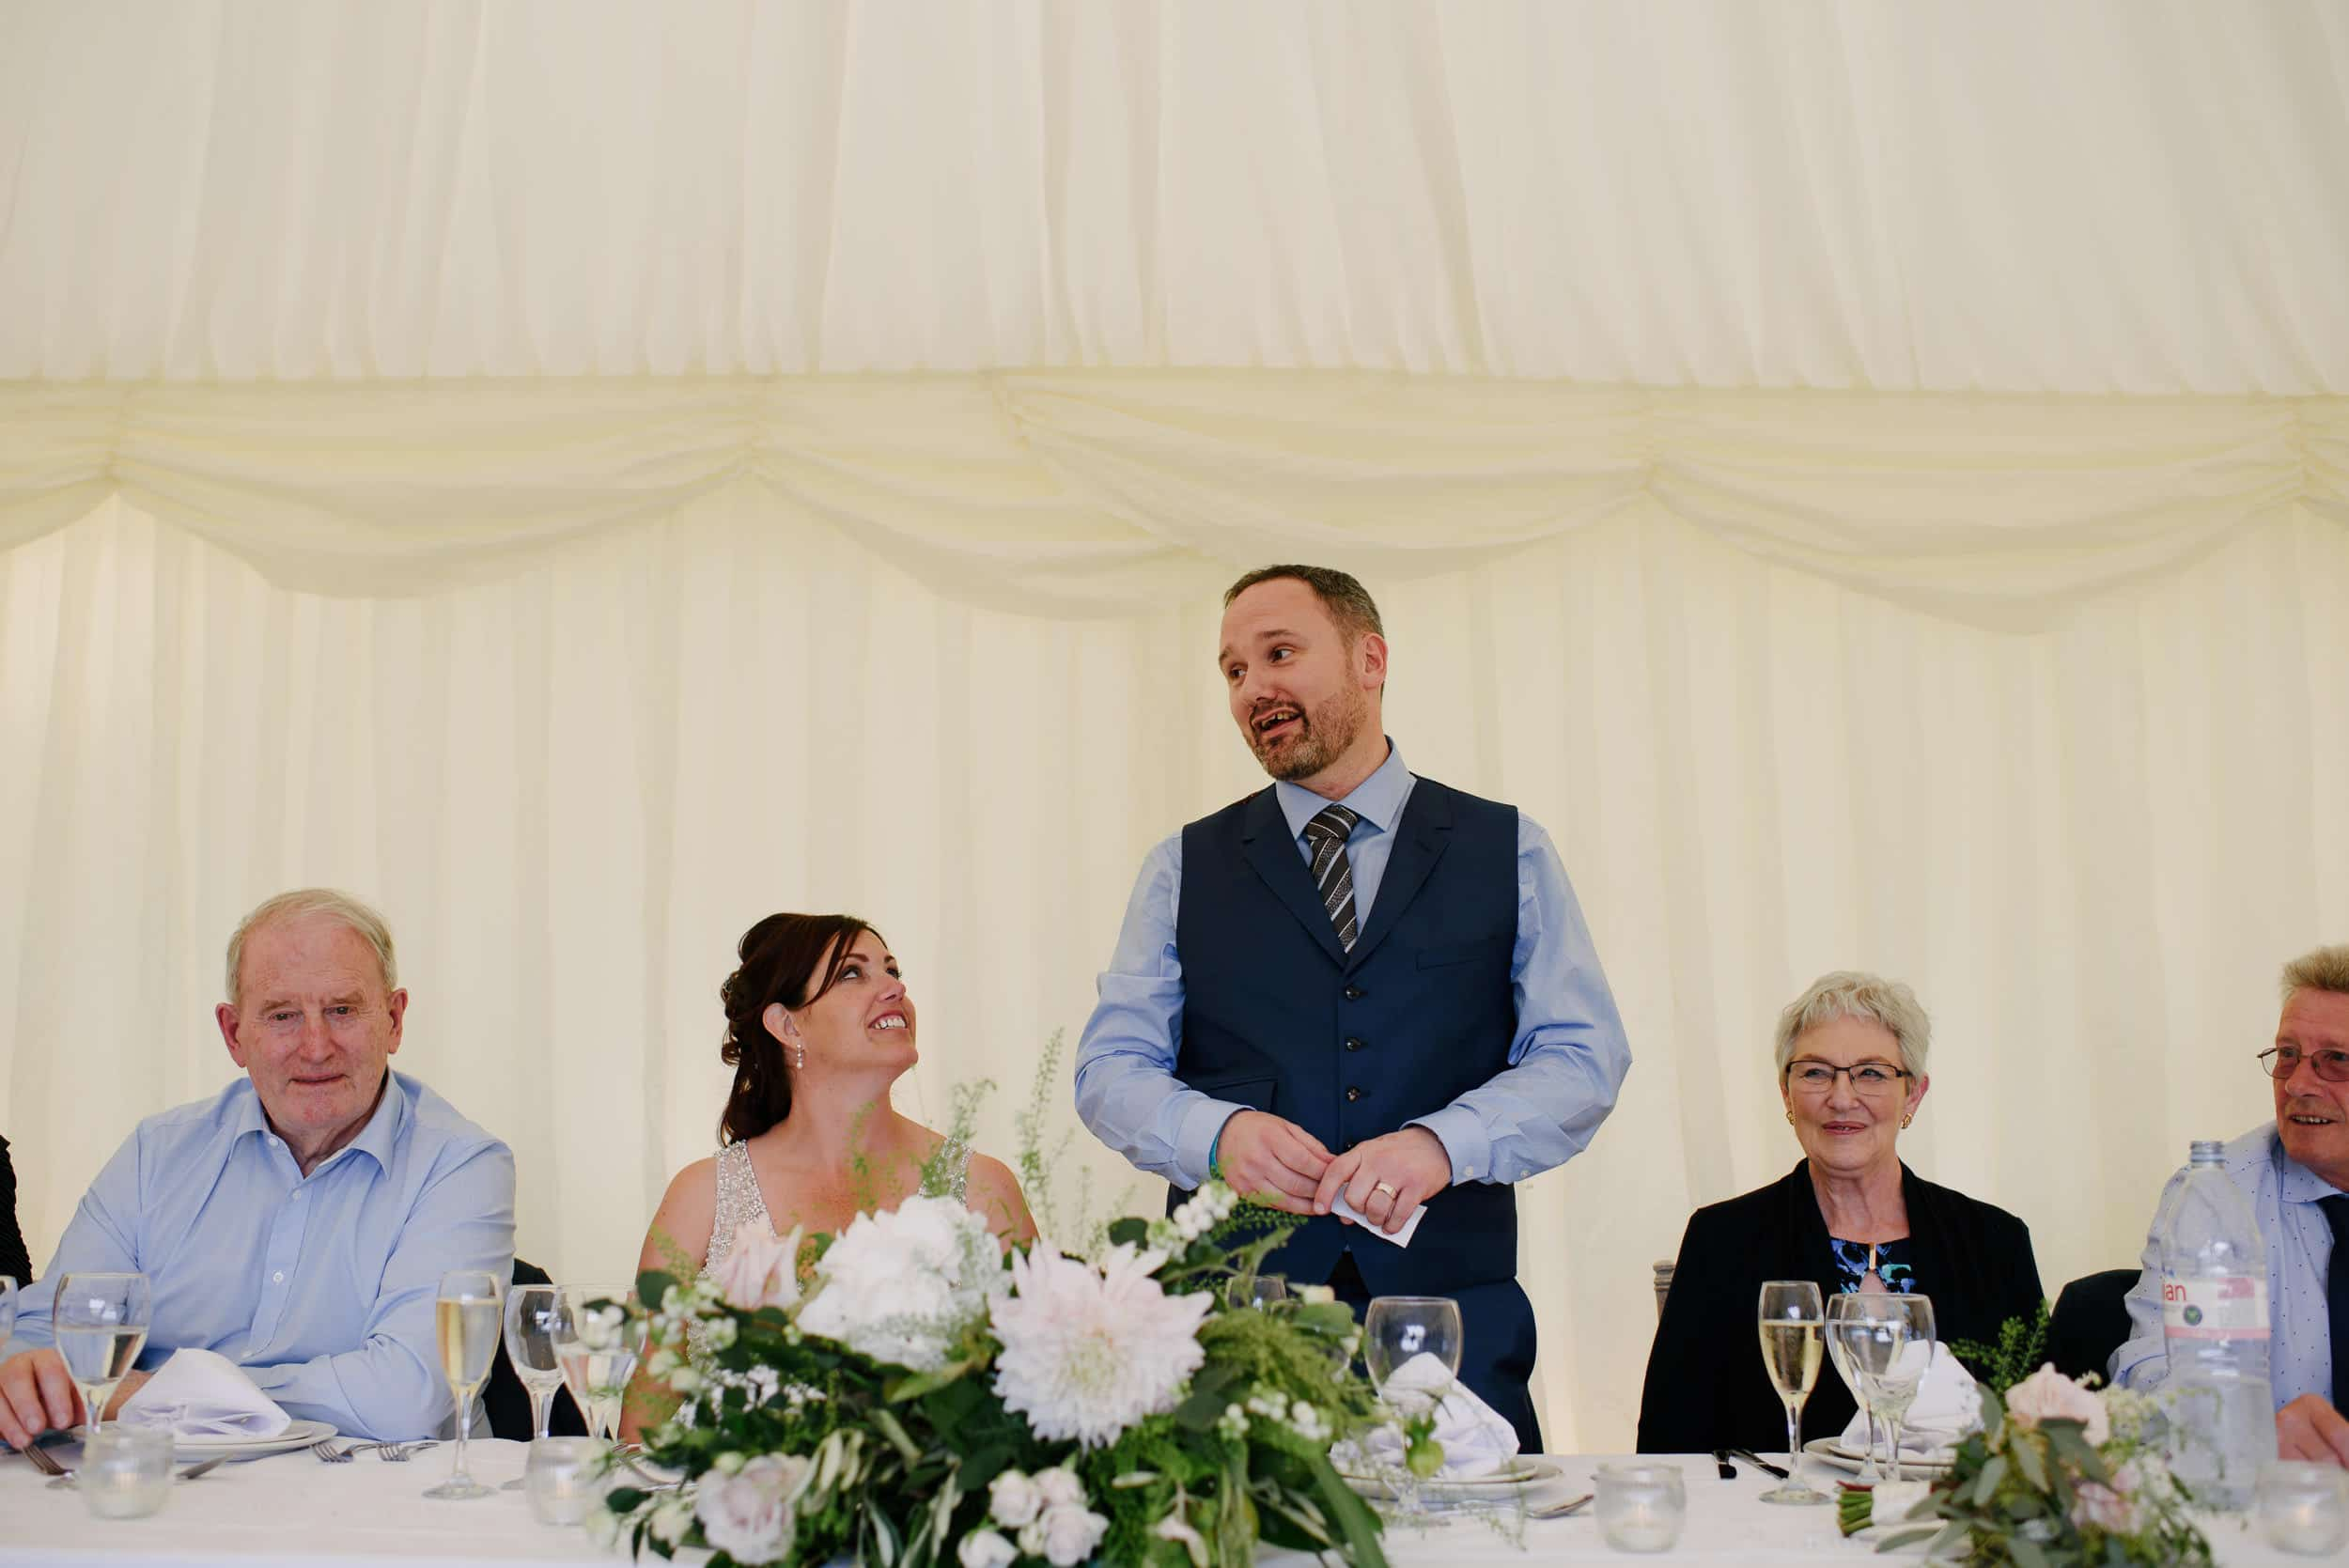 Suzy & Mike - Blickling Hall Wedding 32